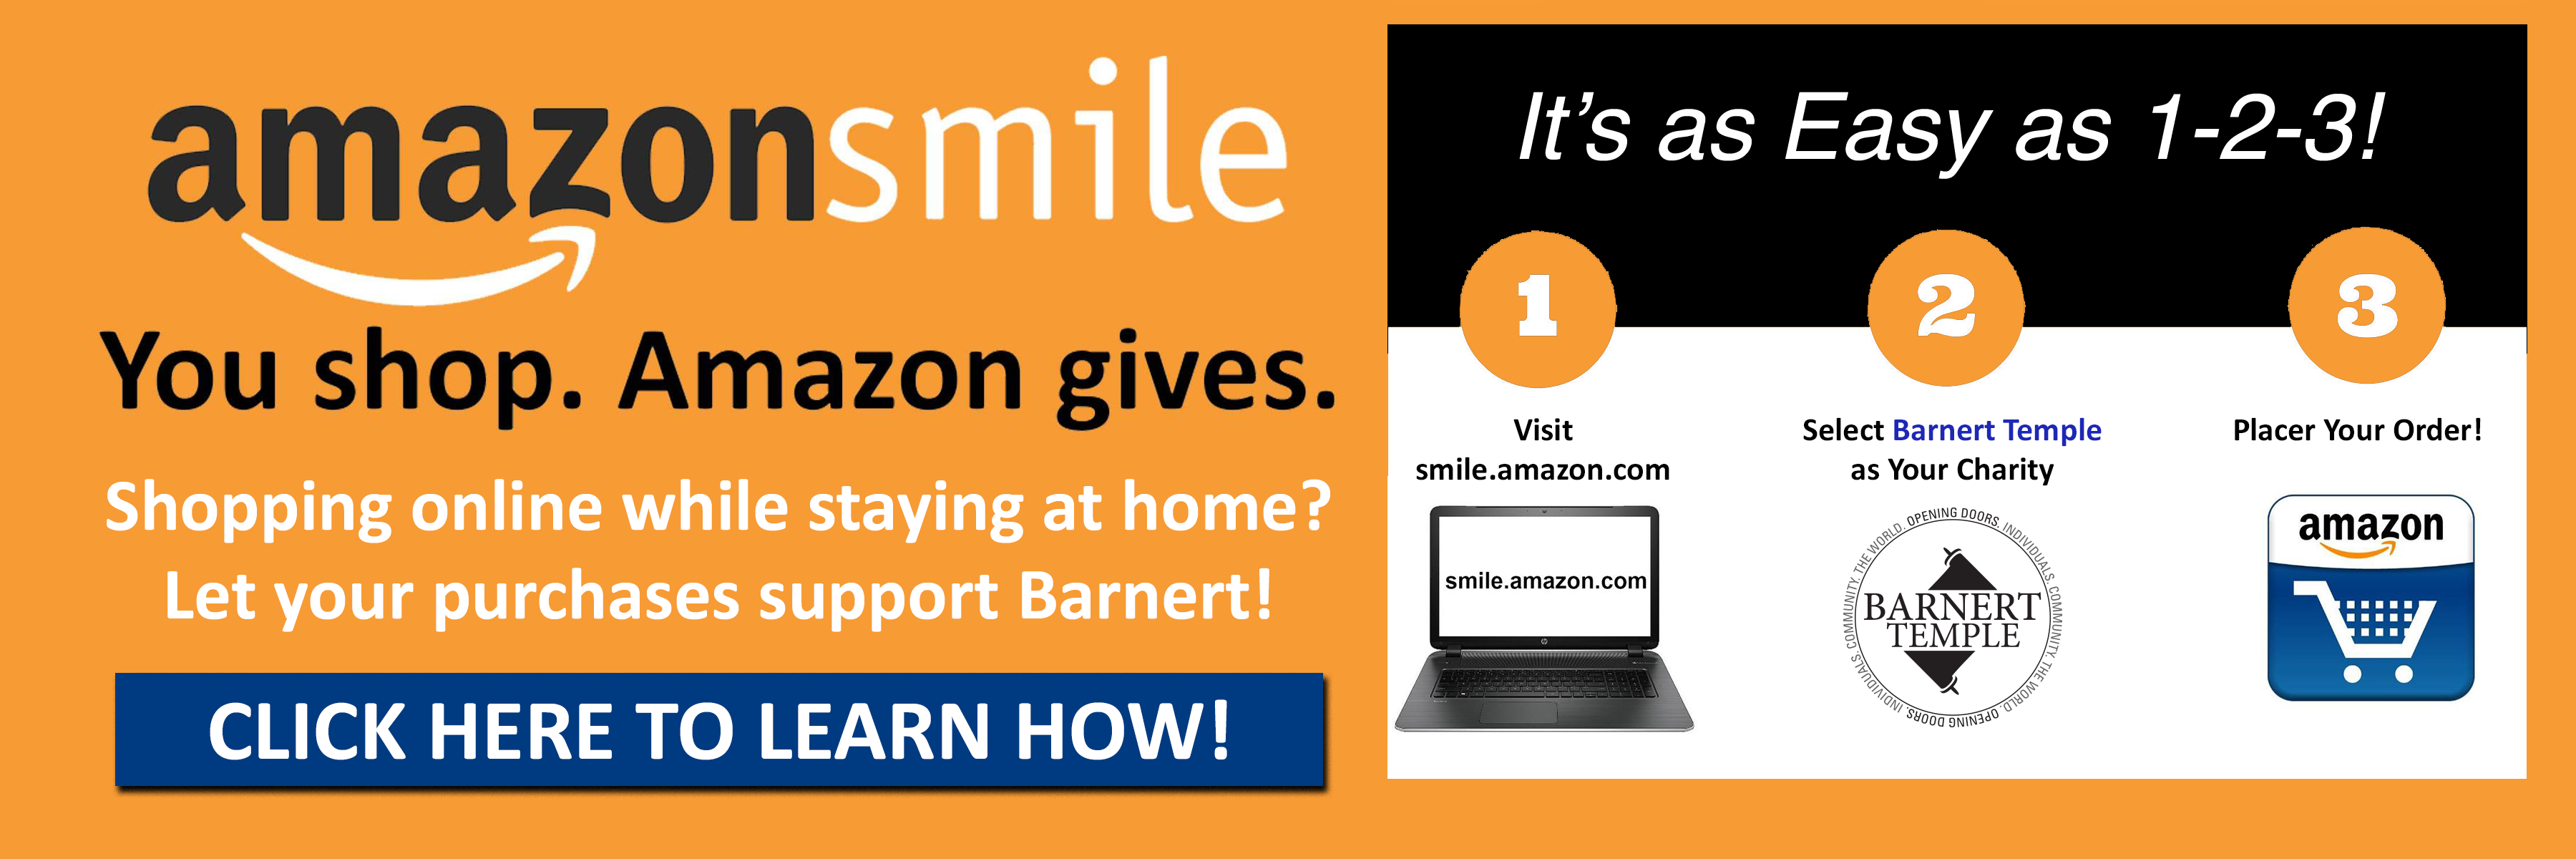 "<a href=""https://www.barnerttemple.org/amazonsmile""